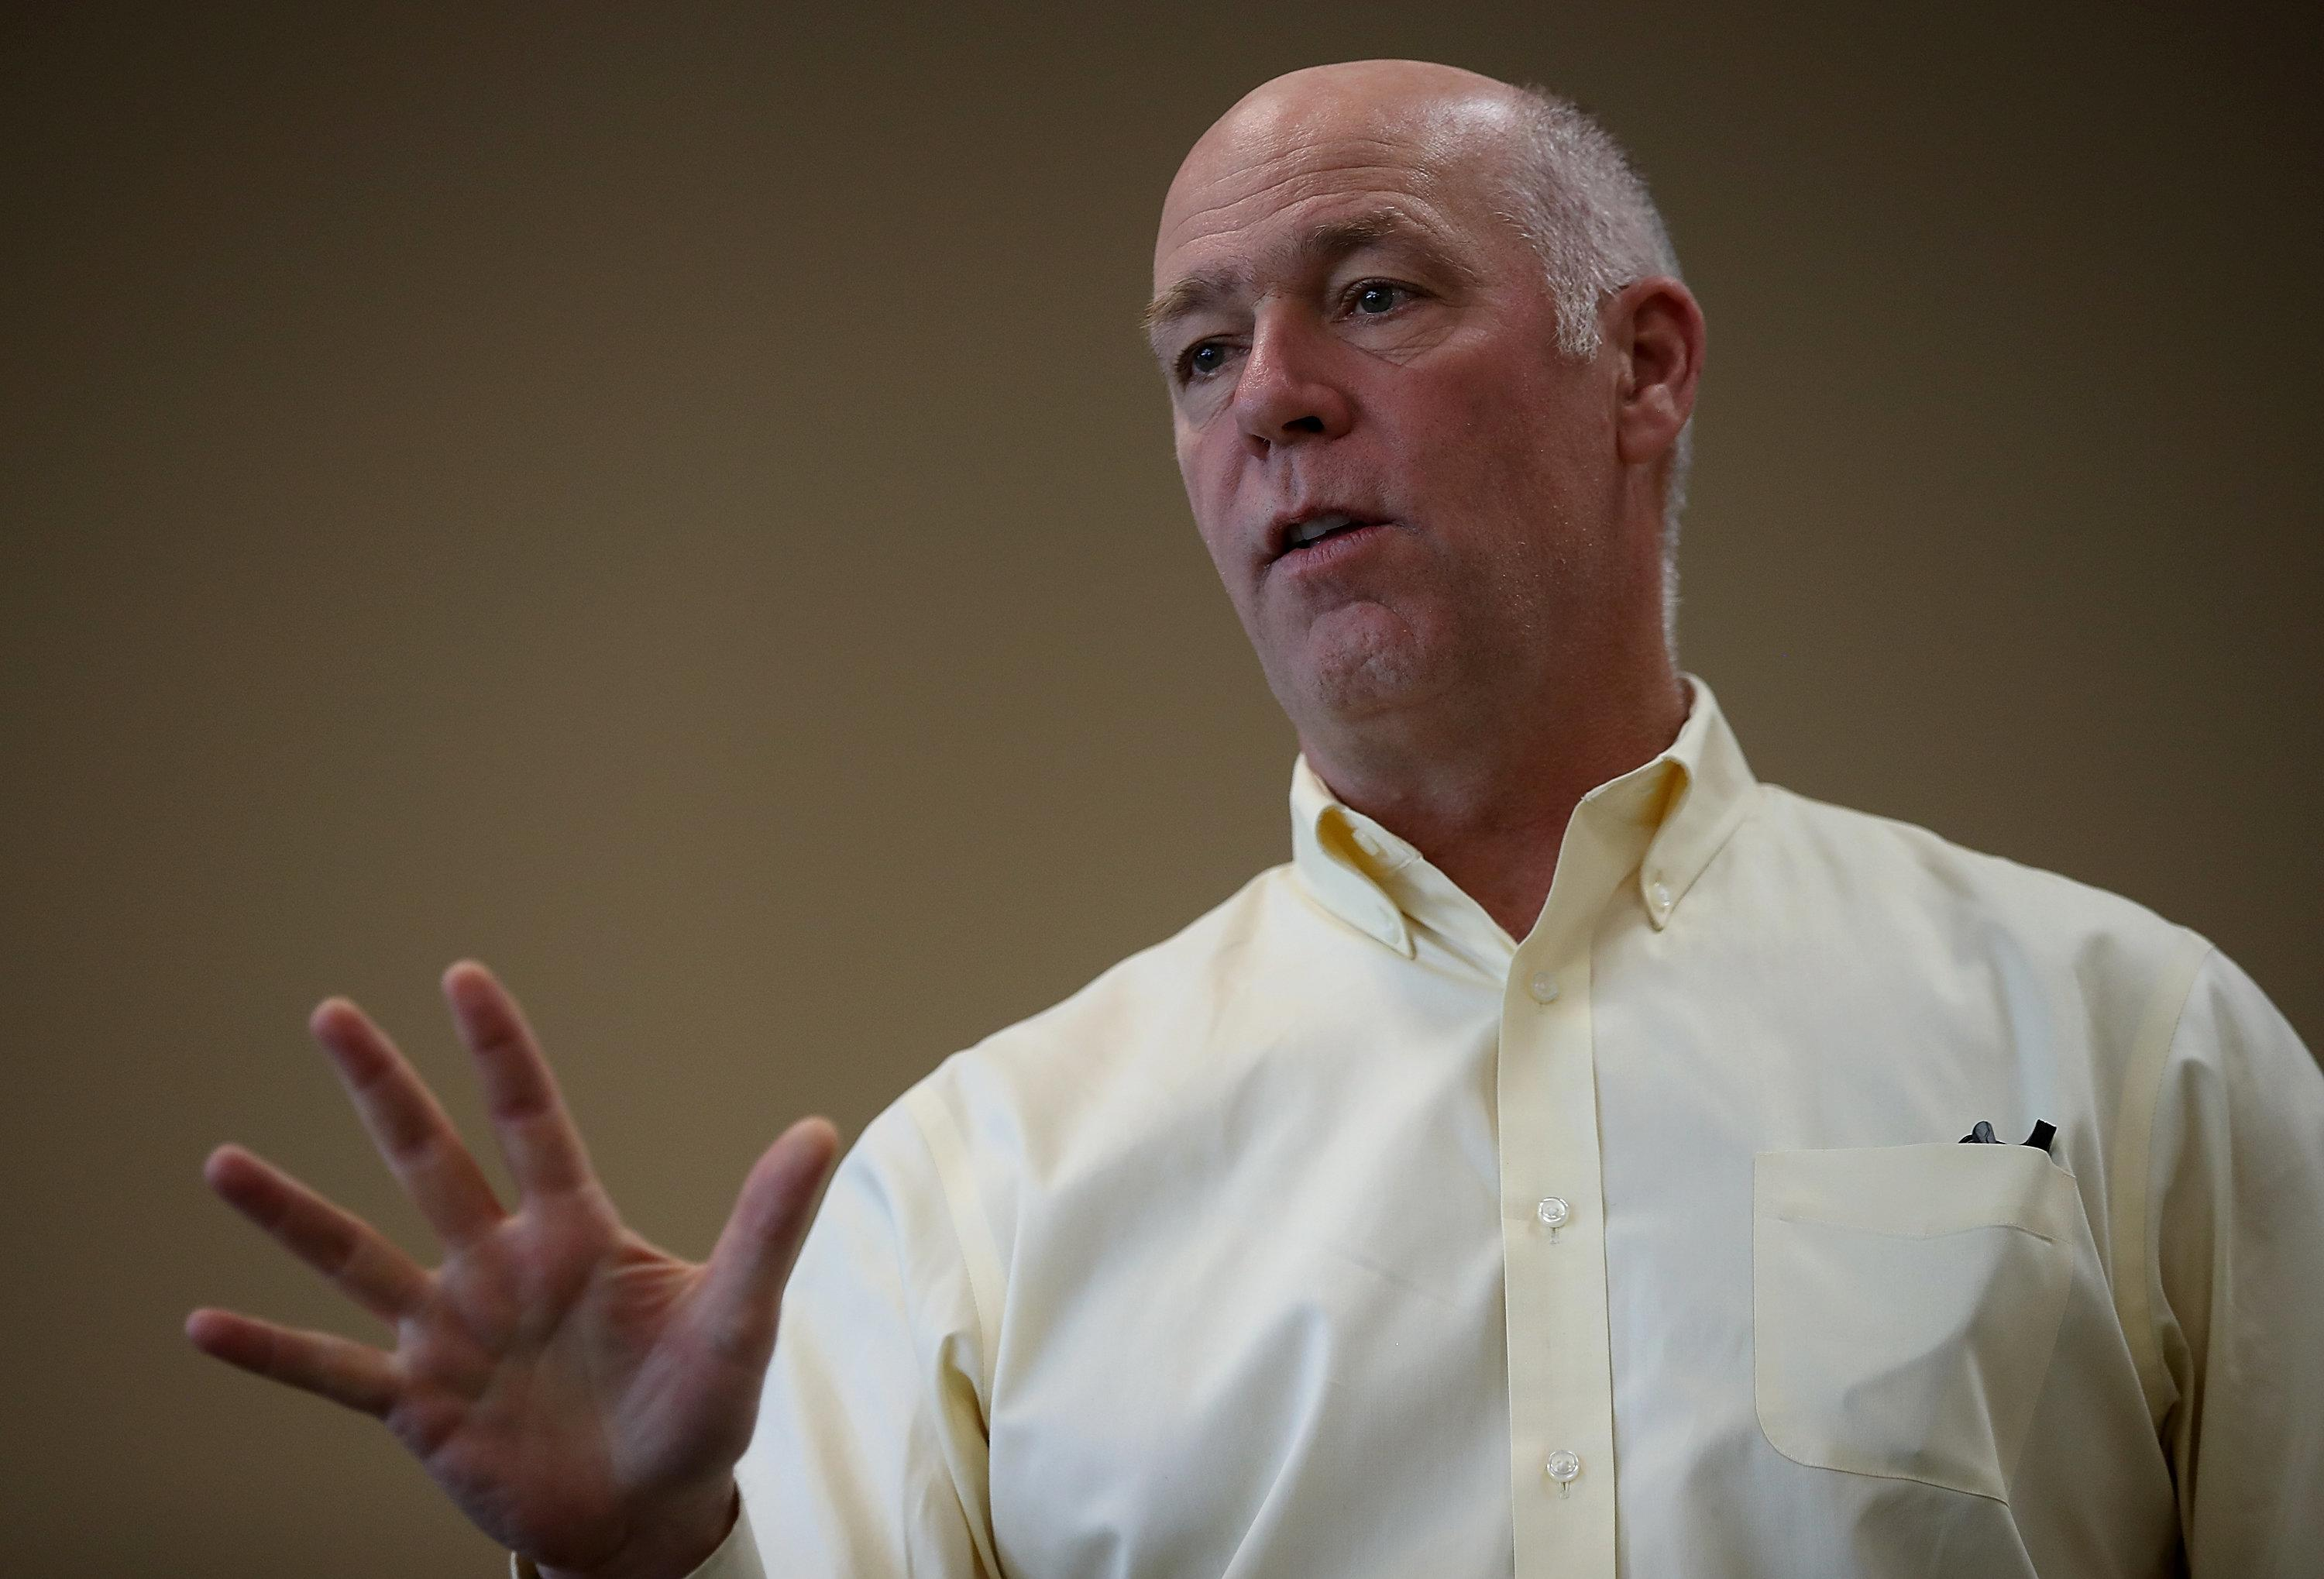 On Wednesday evening, Montana Republican congressional candidate Greg Gianforte slammed Guardian reporter Ben Jacobs to the floor as Jacobs tried to ask his view on GOP health care legislation.